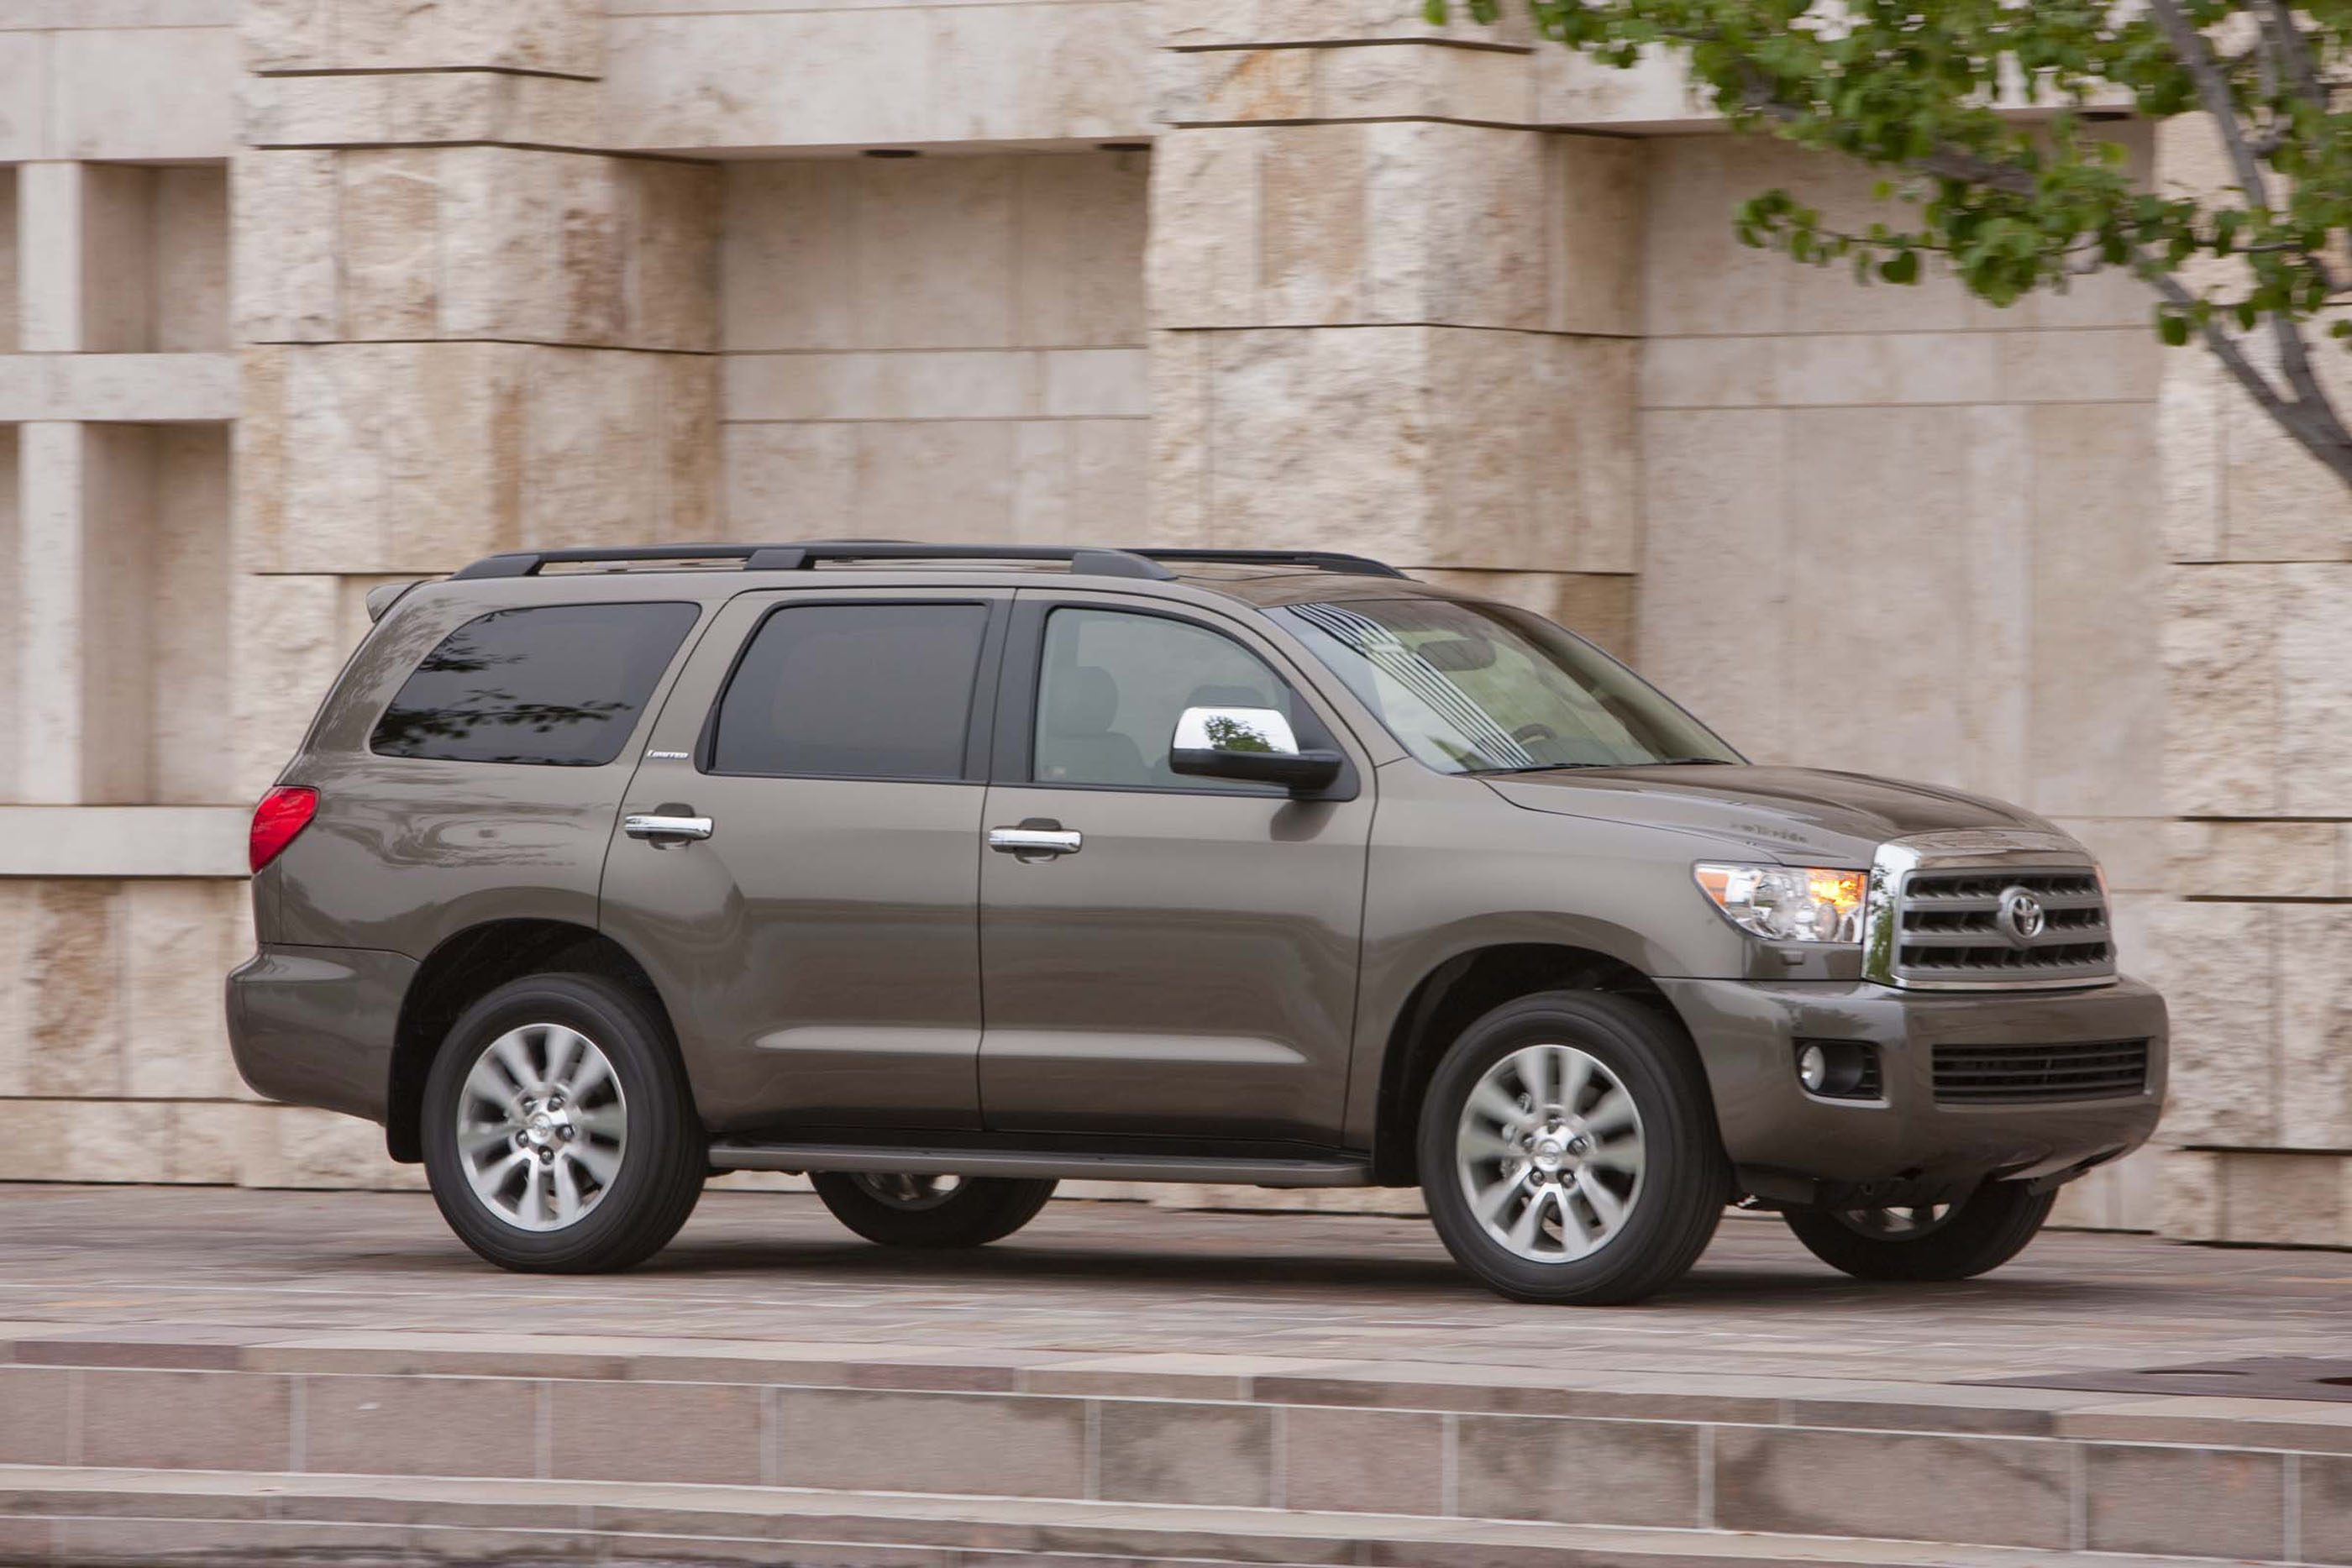 Toyota Kansas City >> 2017 Toyota Sequoia Safety Review and Crash Test Ratings - The Car Connection